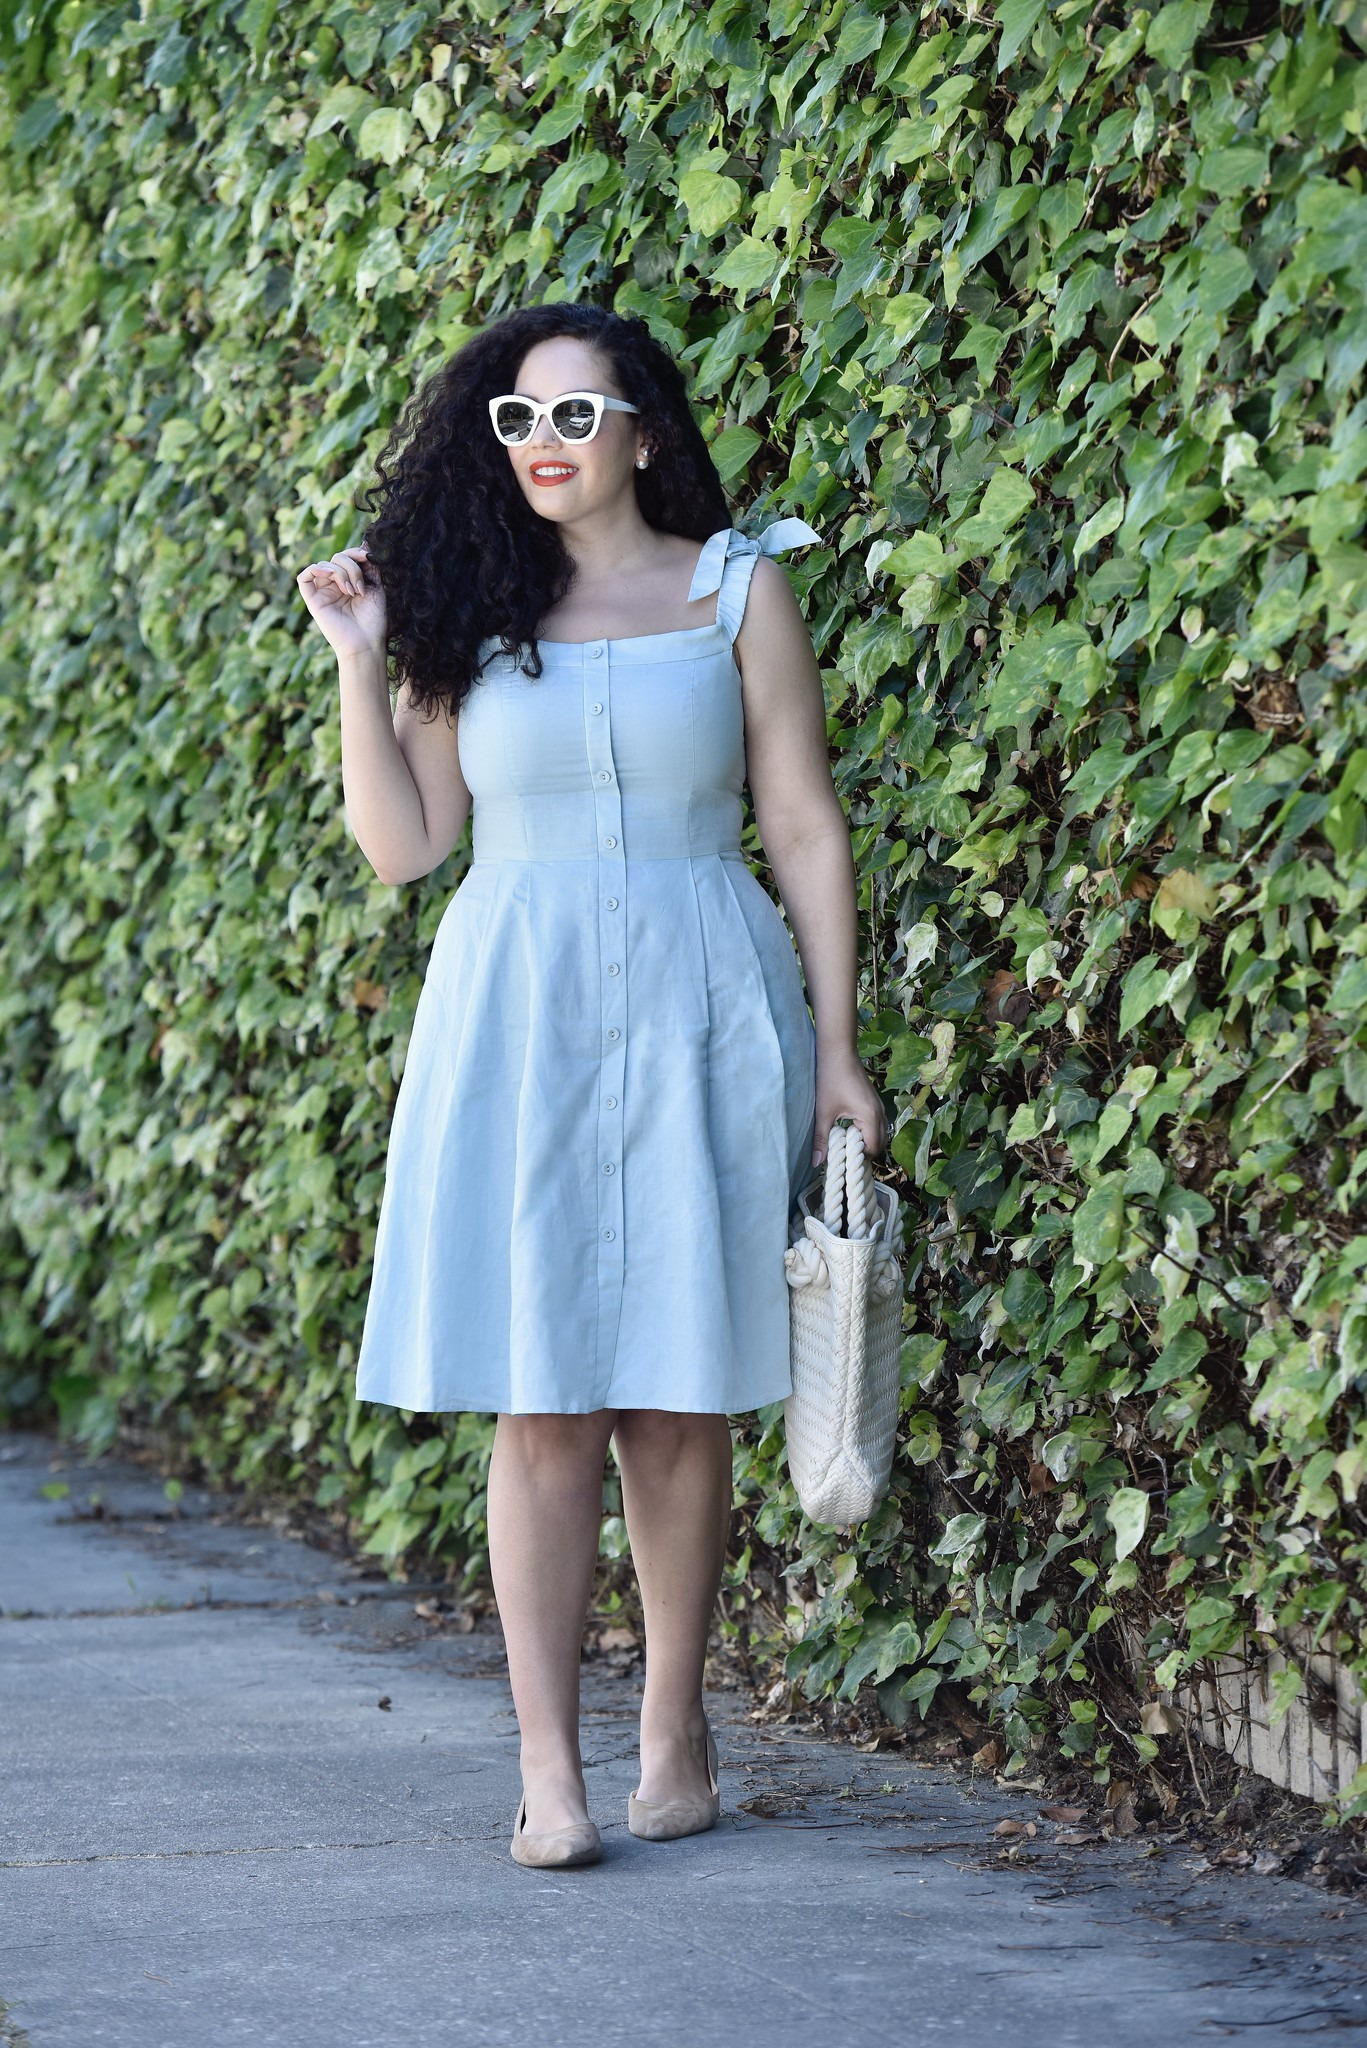 7 Sundresses To Shop Now Via @GirlWithCurves #sundress #dress #summer #blue #sleeveless